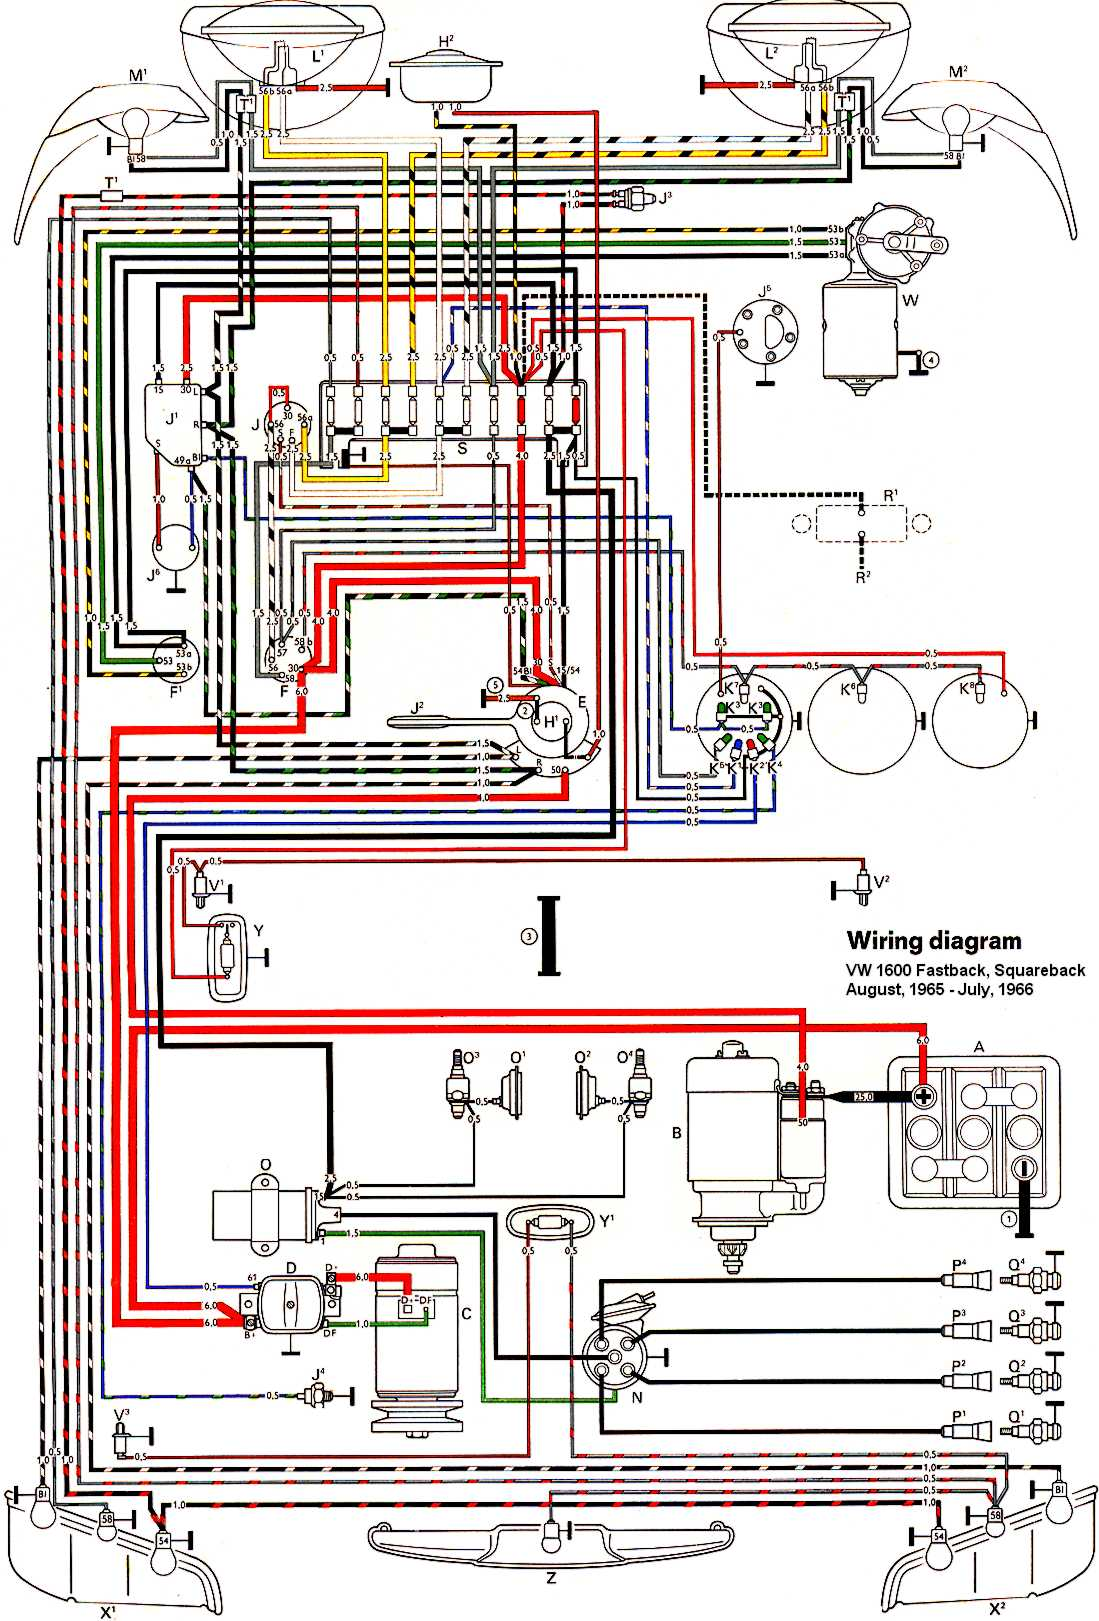 type3_1600_66 vw bus wiring diagram 1965 vw bus wiring diagram \u2022 wiring diagrams 1970 vw bug wiring diagram at panicattacktreatment.co